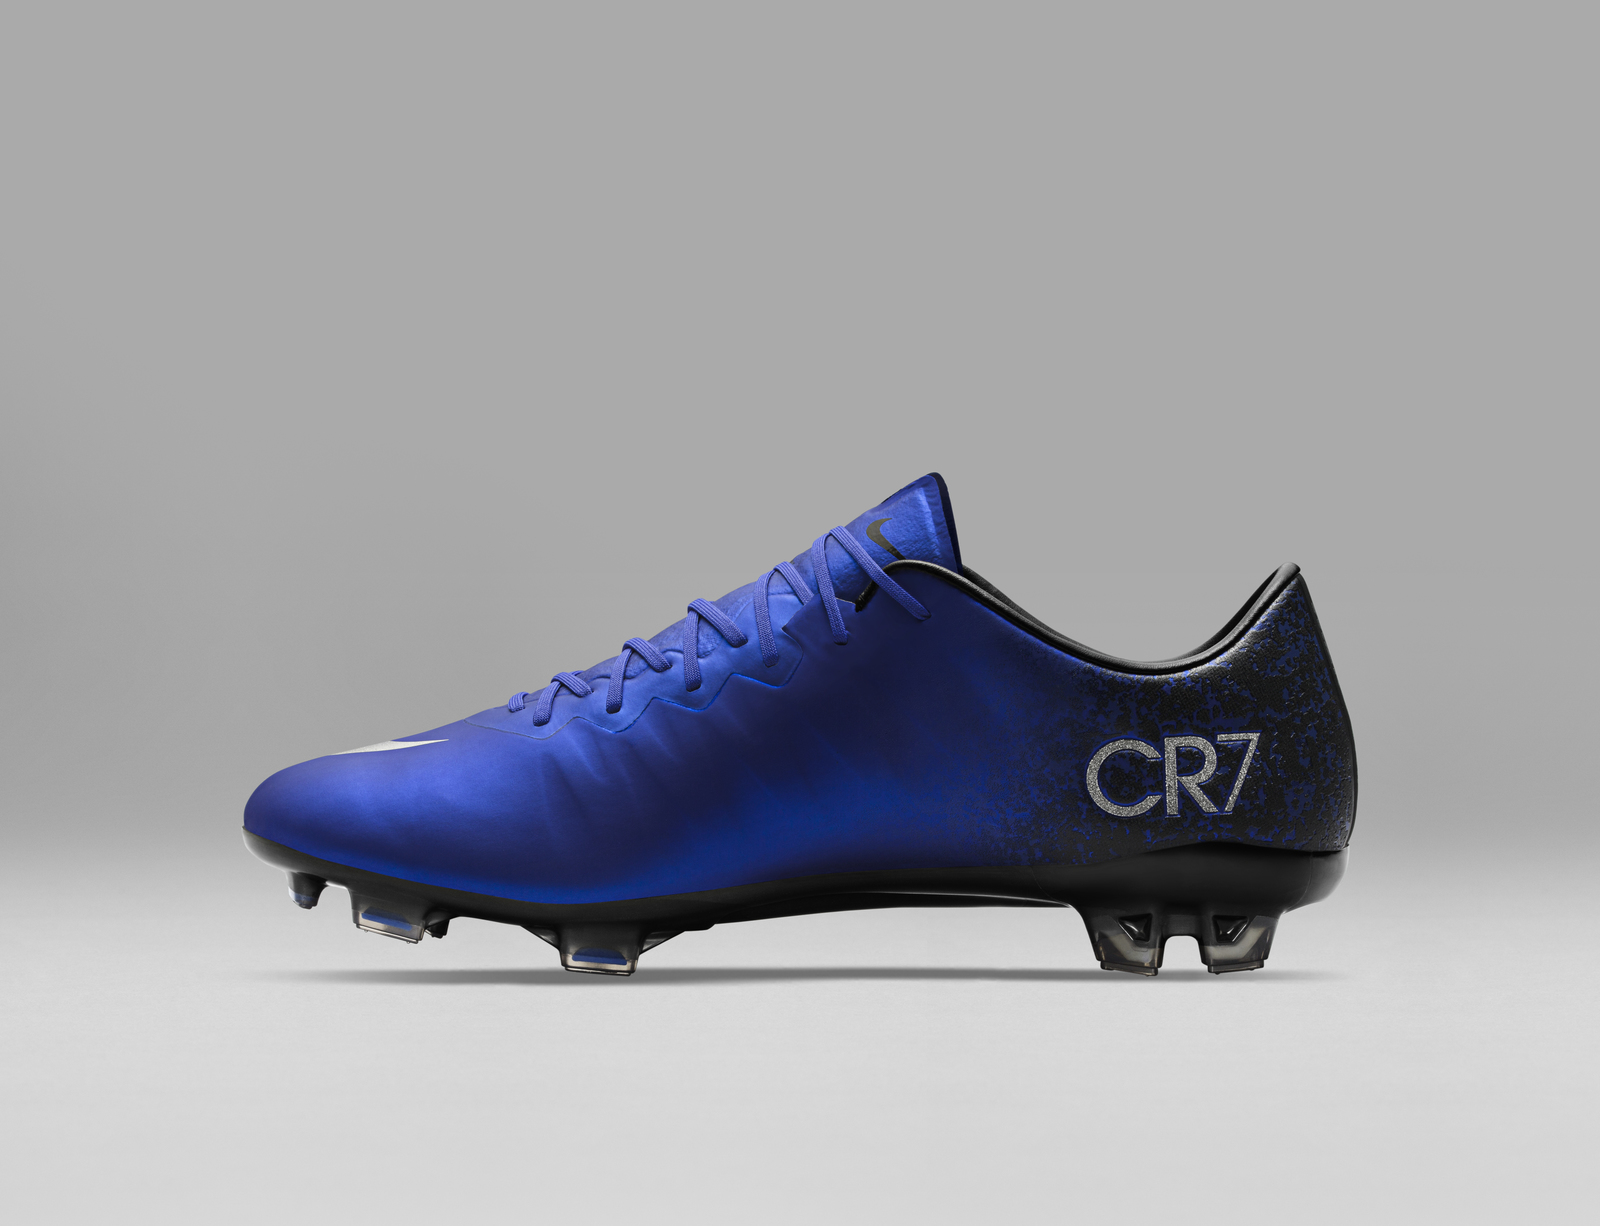 Blue CR7 Natural Diamond Mercurial Superfly Boots ...